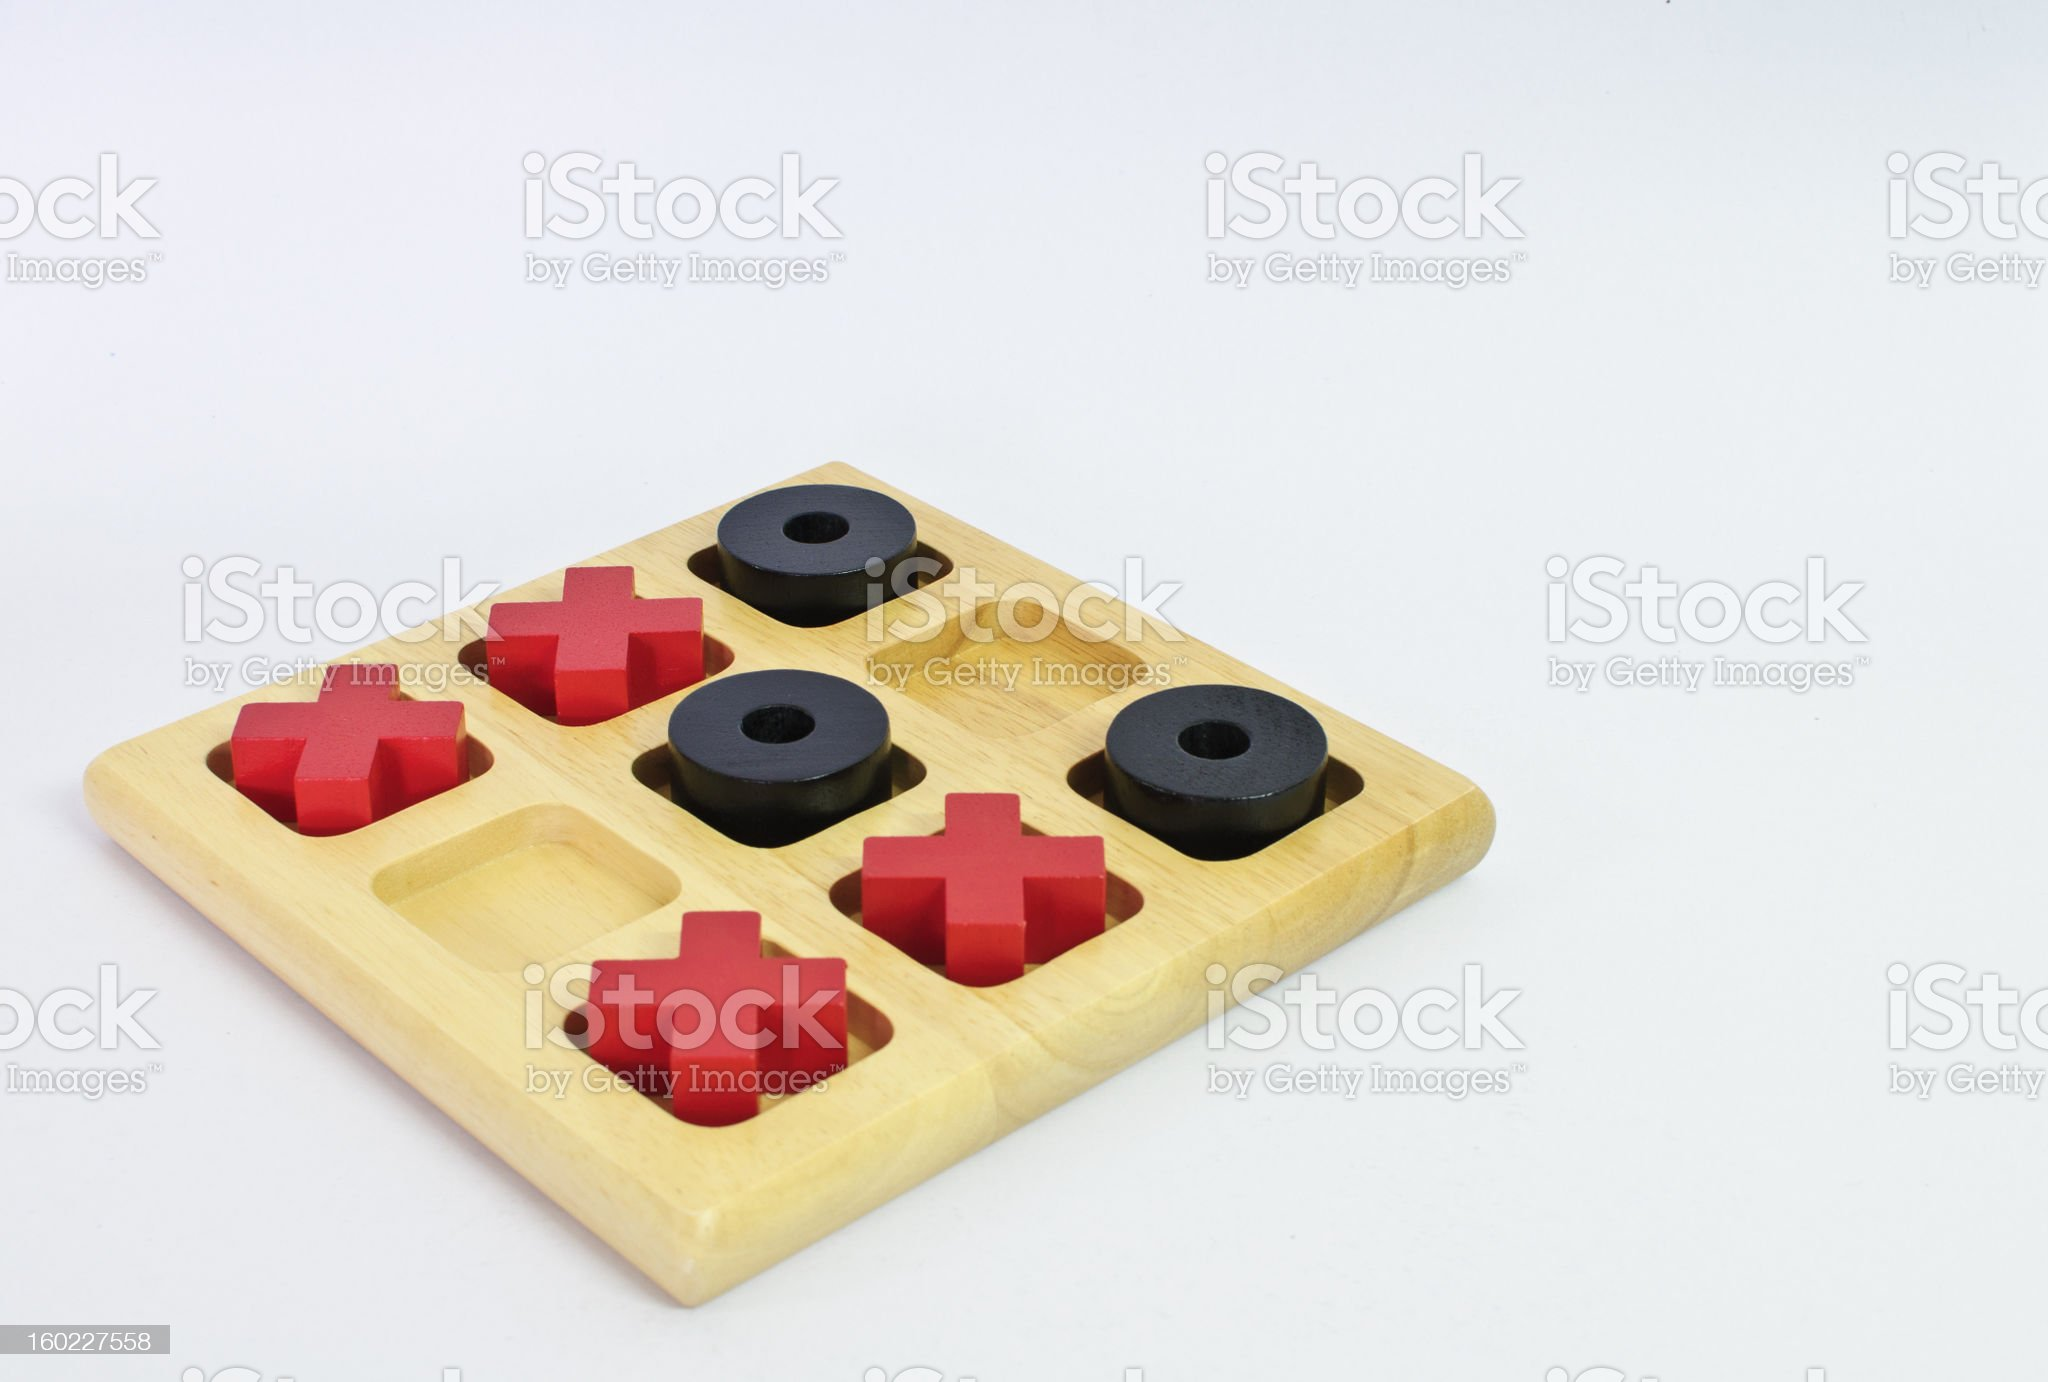 Tic-tac-toe classic game royalty-free stock photo